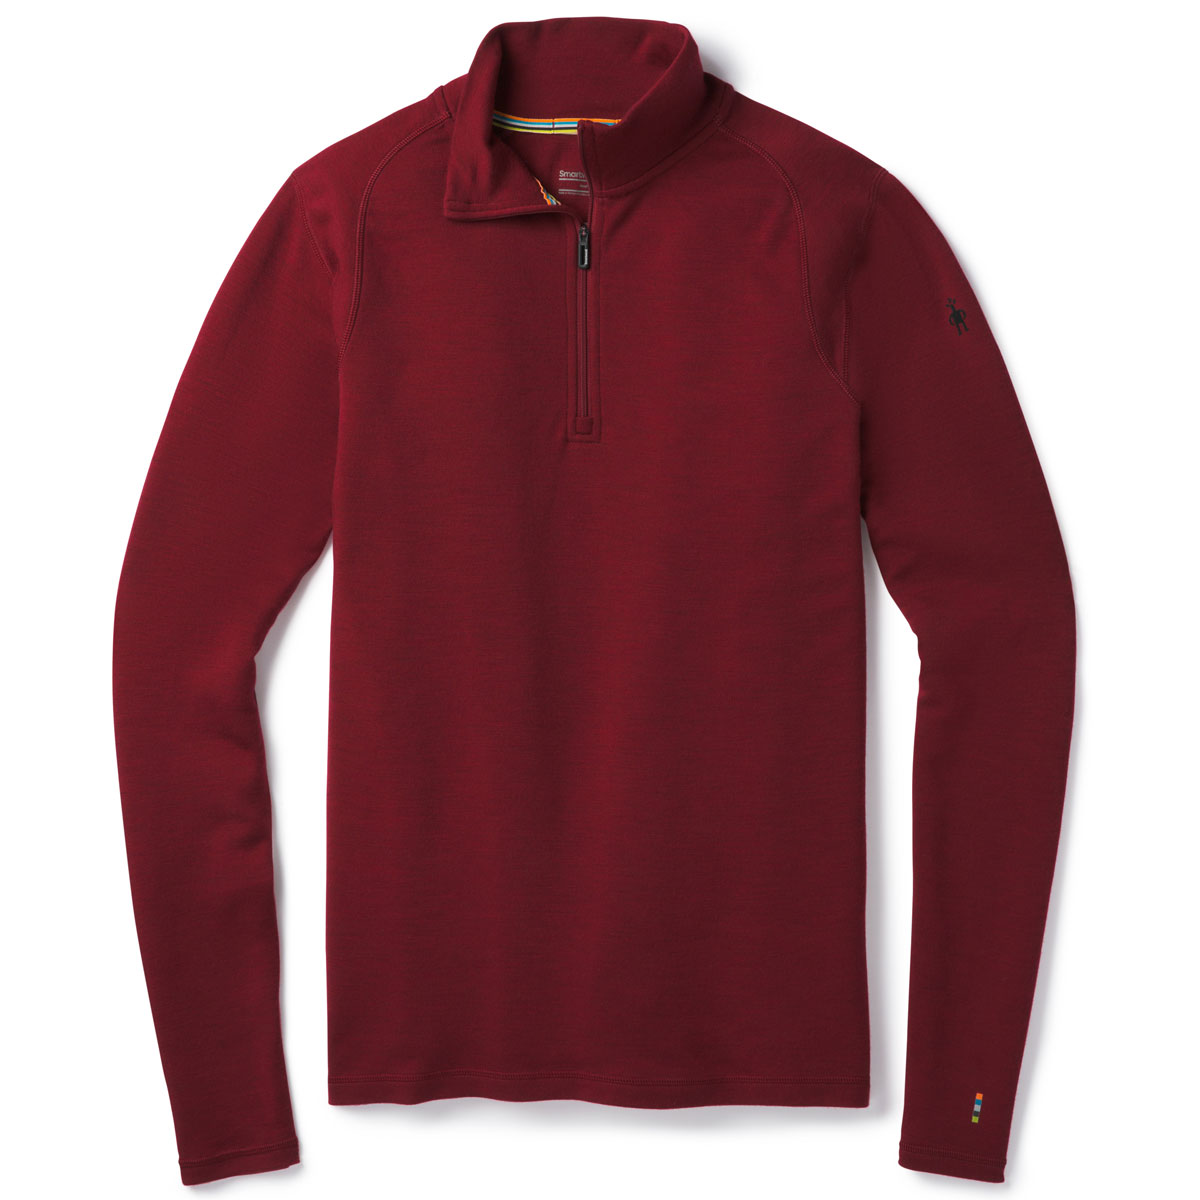 Smartwool Men's Nts Mid 250 Zip T - Red, XL